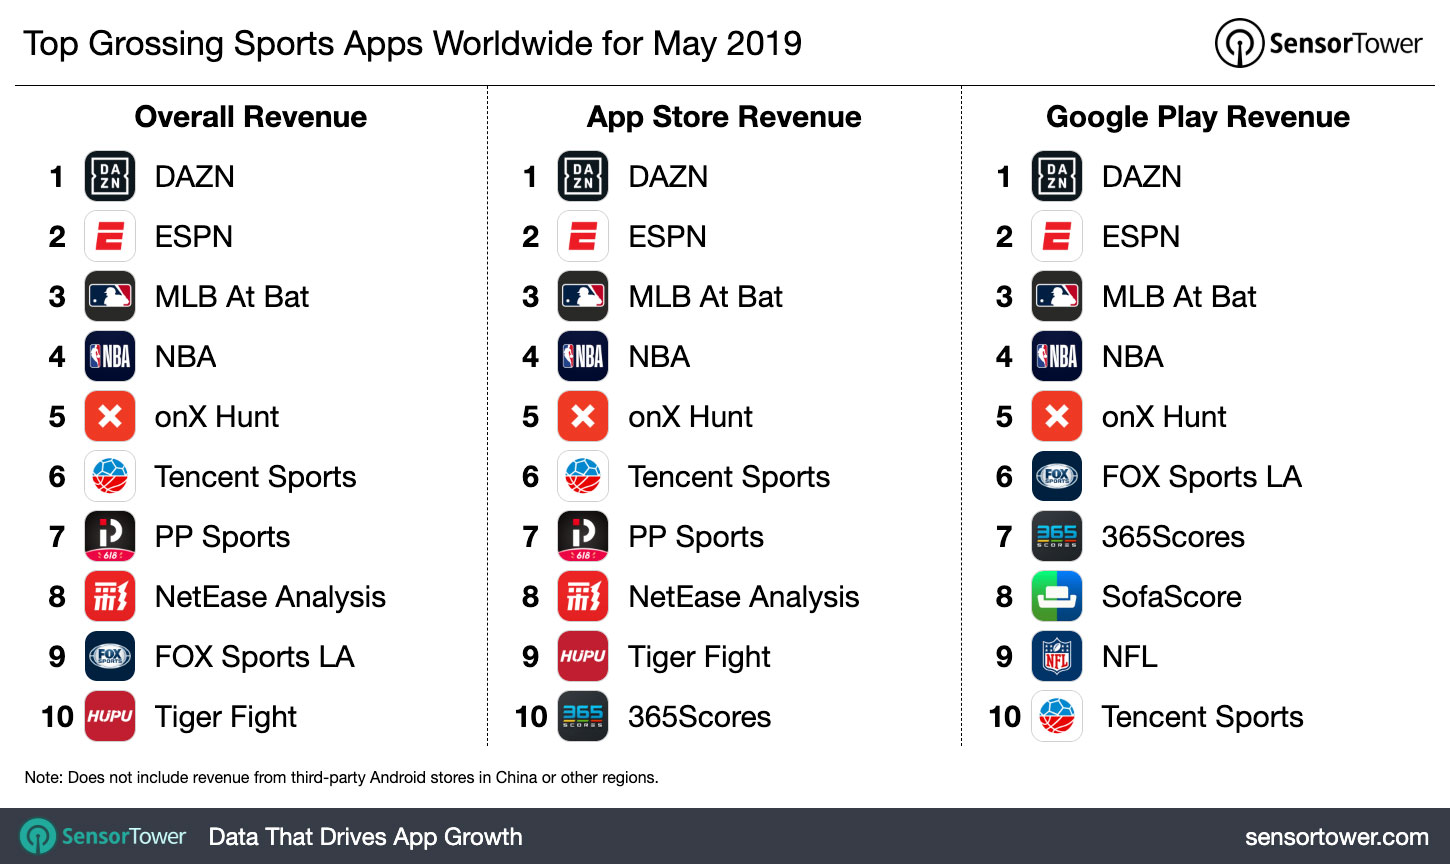 Top Grossing Sports Apps Worldwide For May 2019